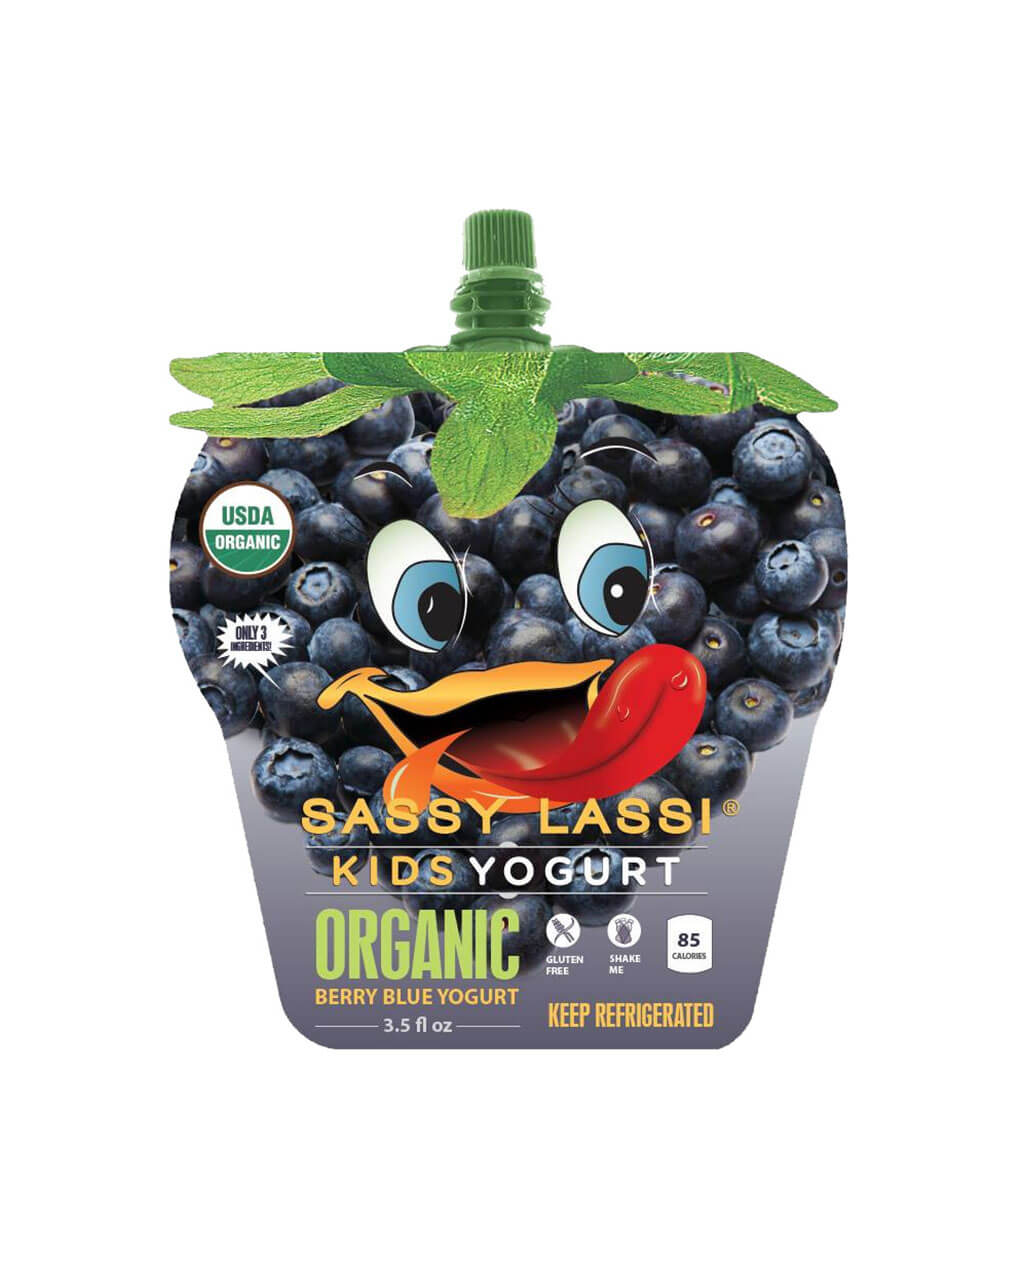 Organic real fruit yogurt